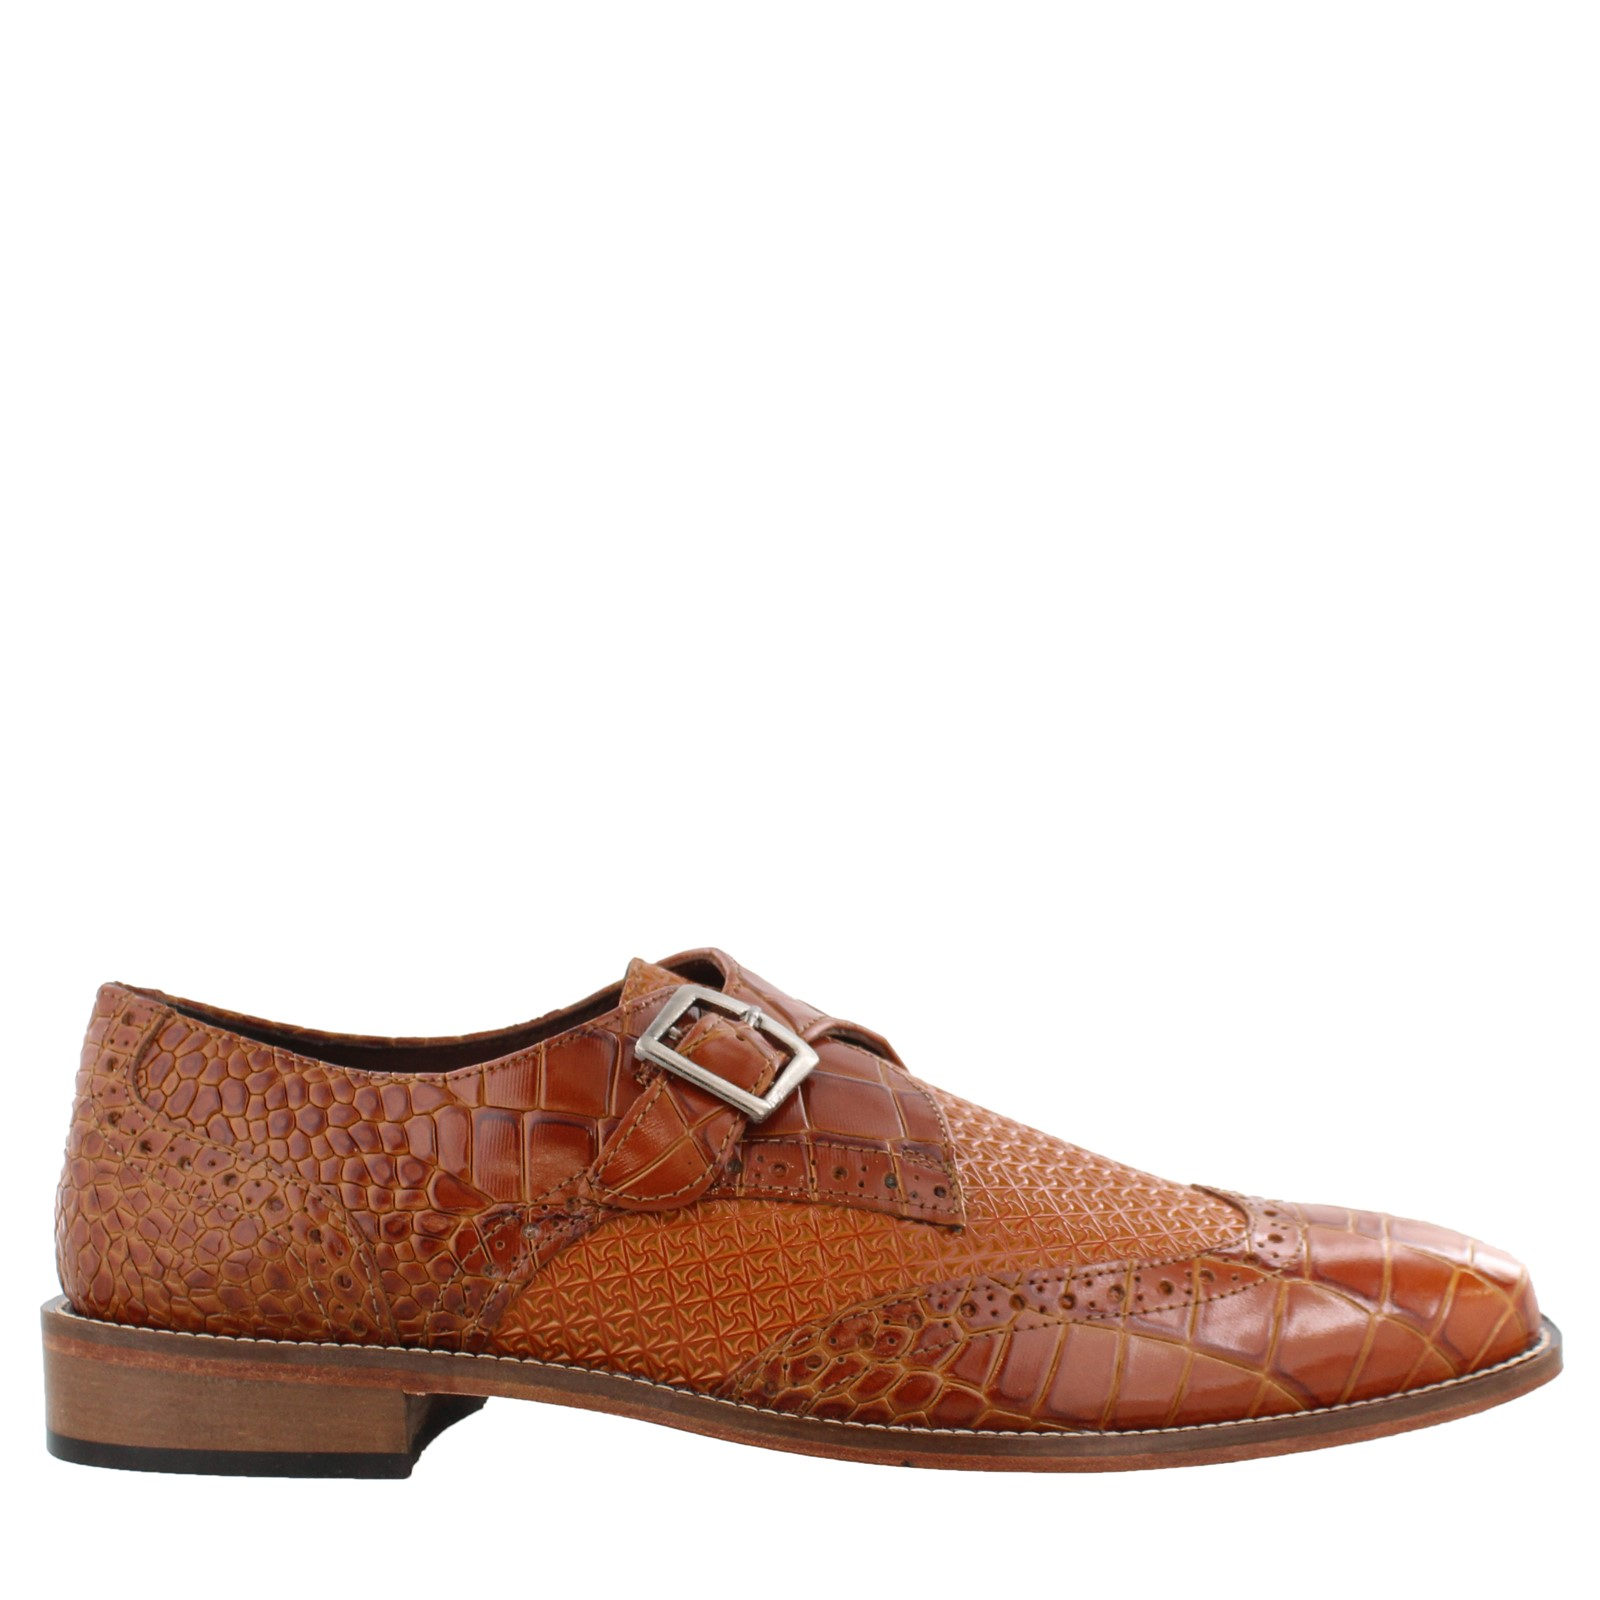 Men's Stacy Adams, Giannino Monk Strap Loafers